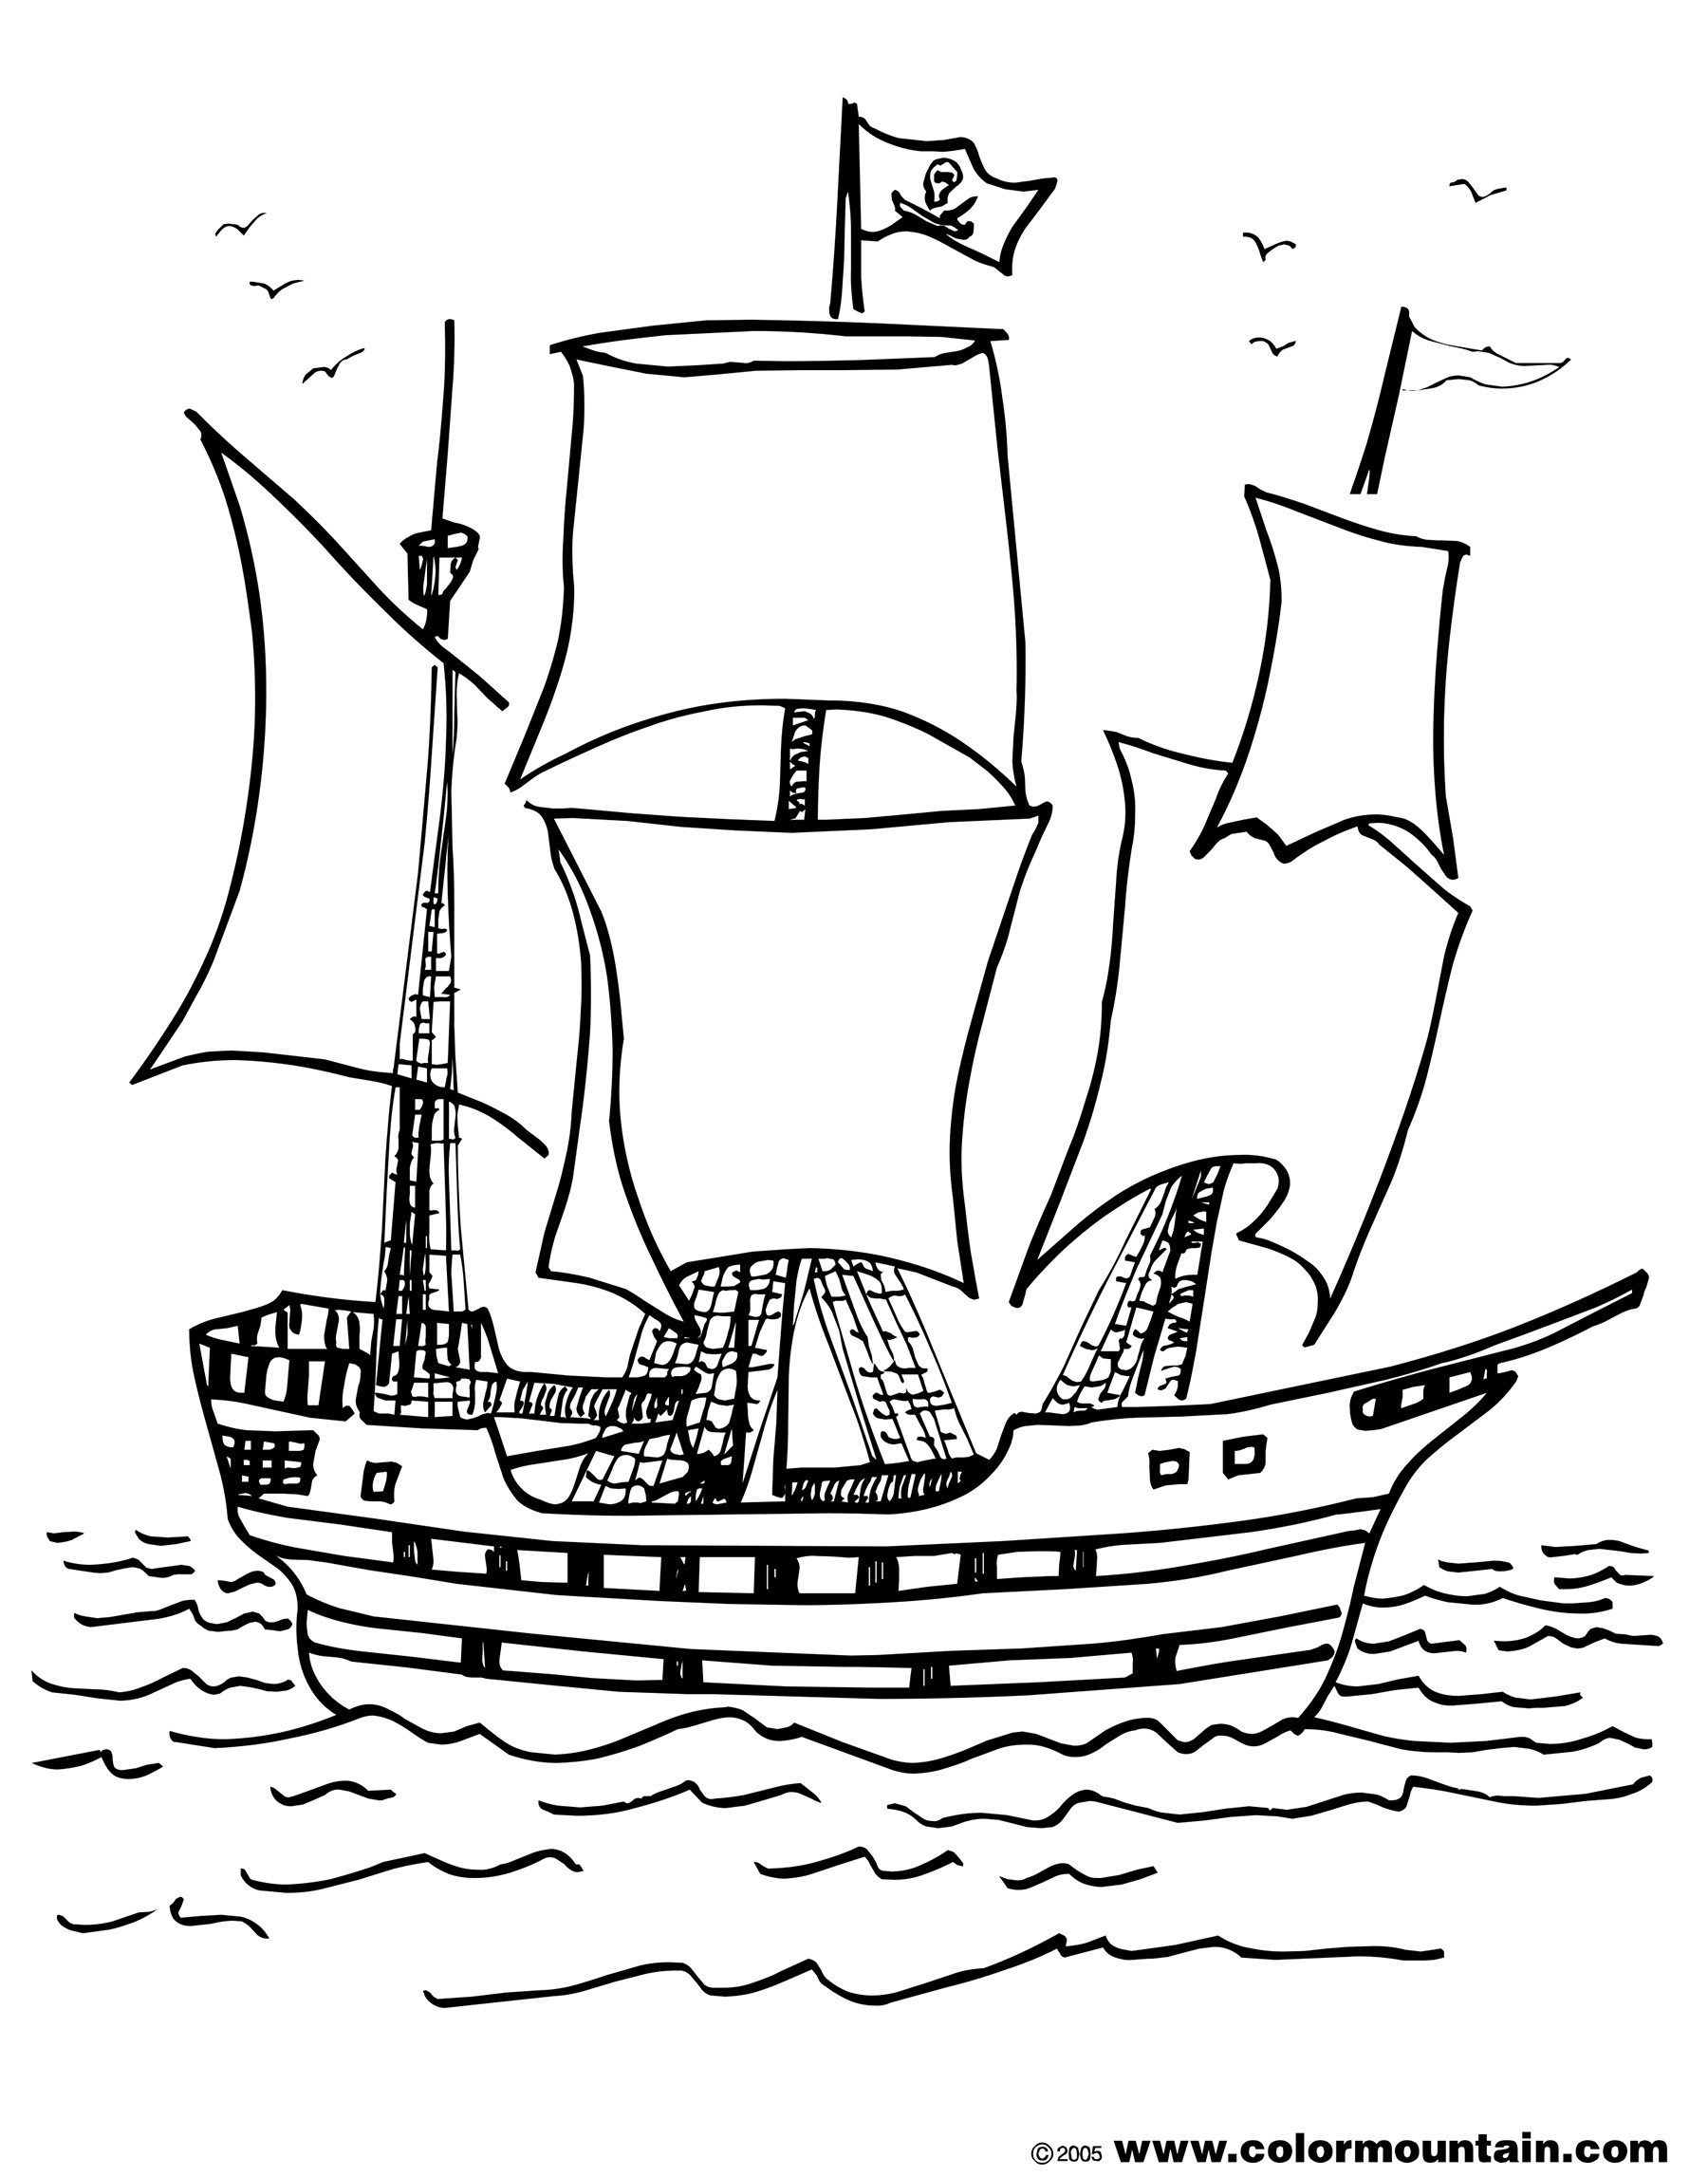 Coloring Pages Of Ships  Download 6j - Free For Children